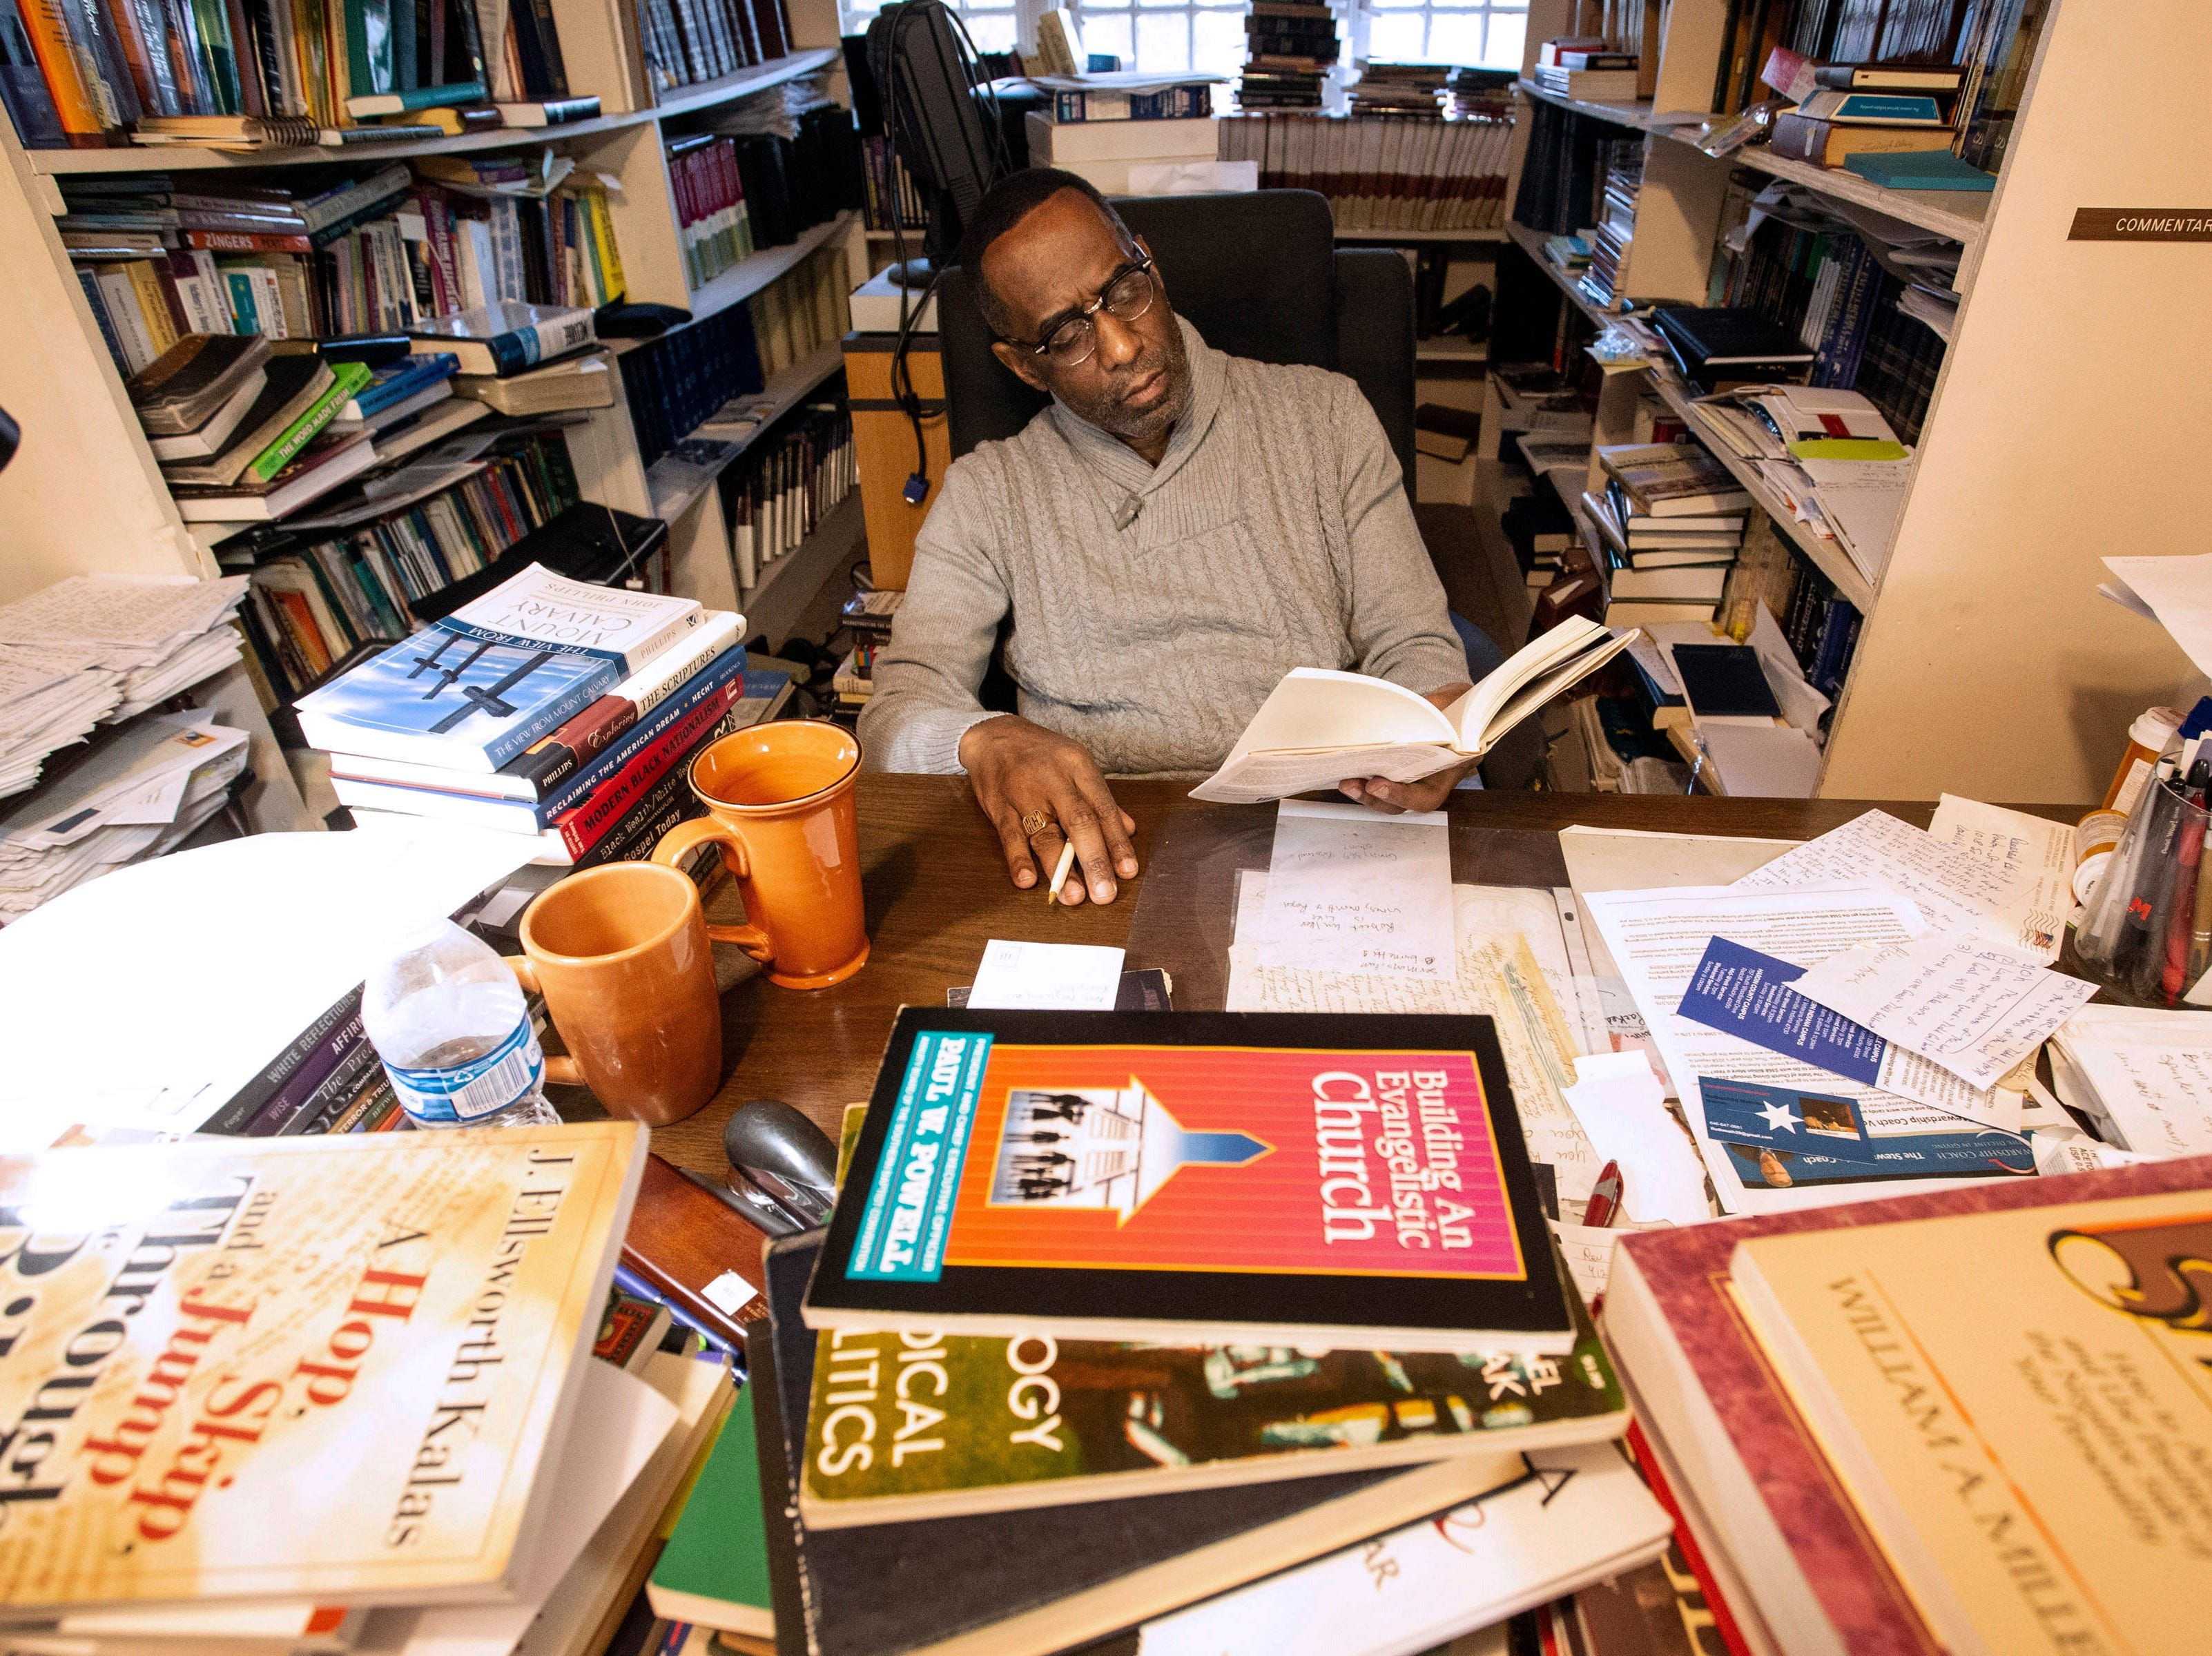 A desk nestled between shelves and stacks of books is where the Reverend Kevin Cosby does his sermon writing. 11/24/18